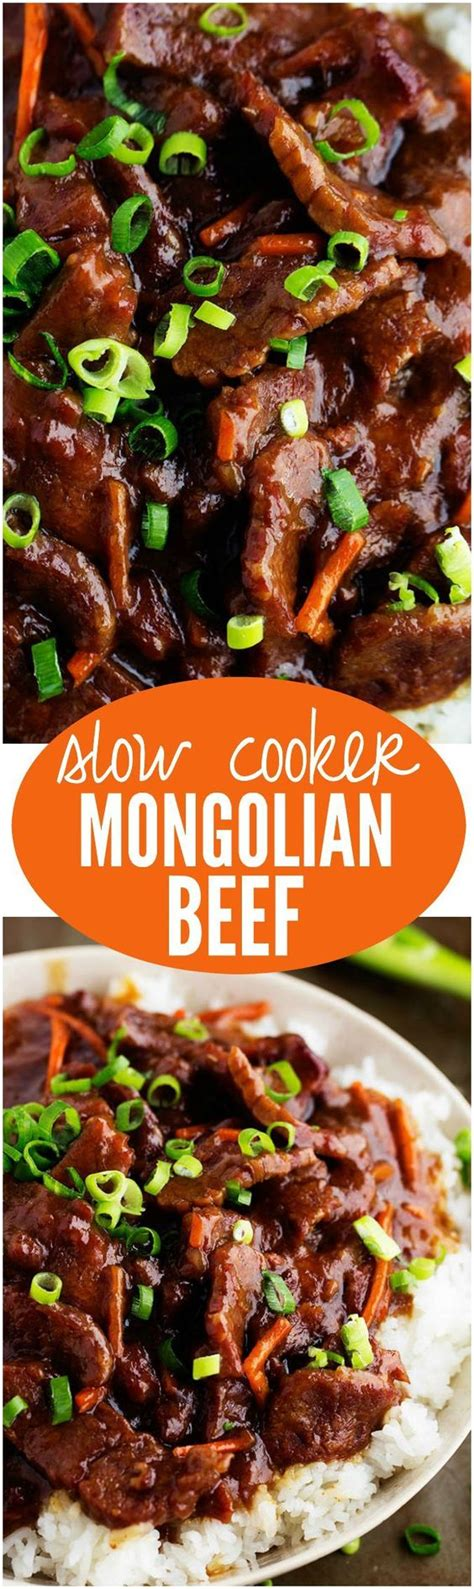 slow cooker mongolian beef recipe things to make mongolian beef and coupon codes